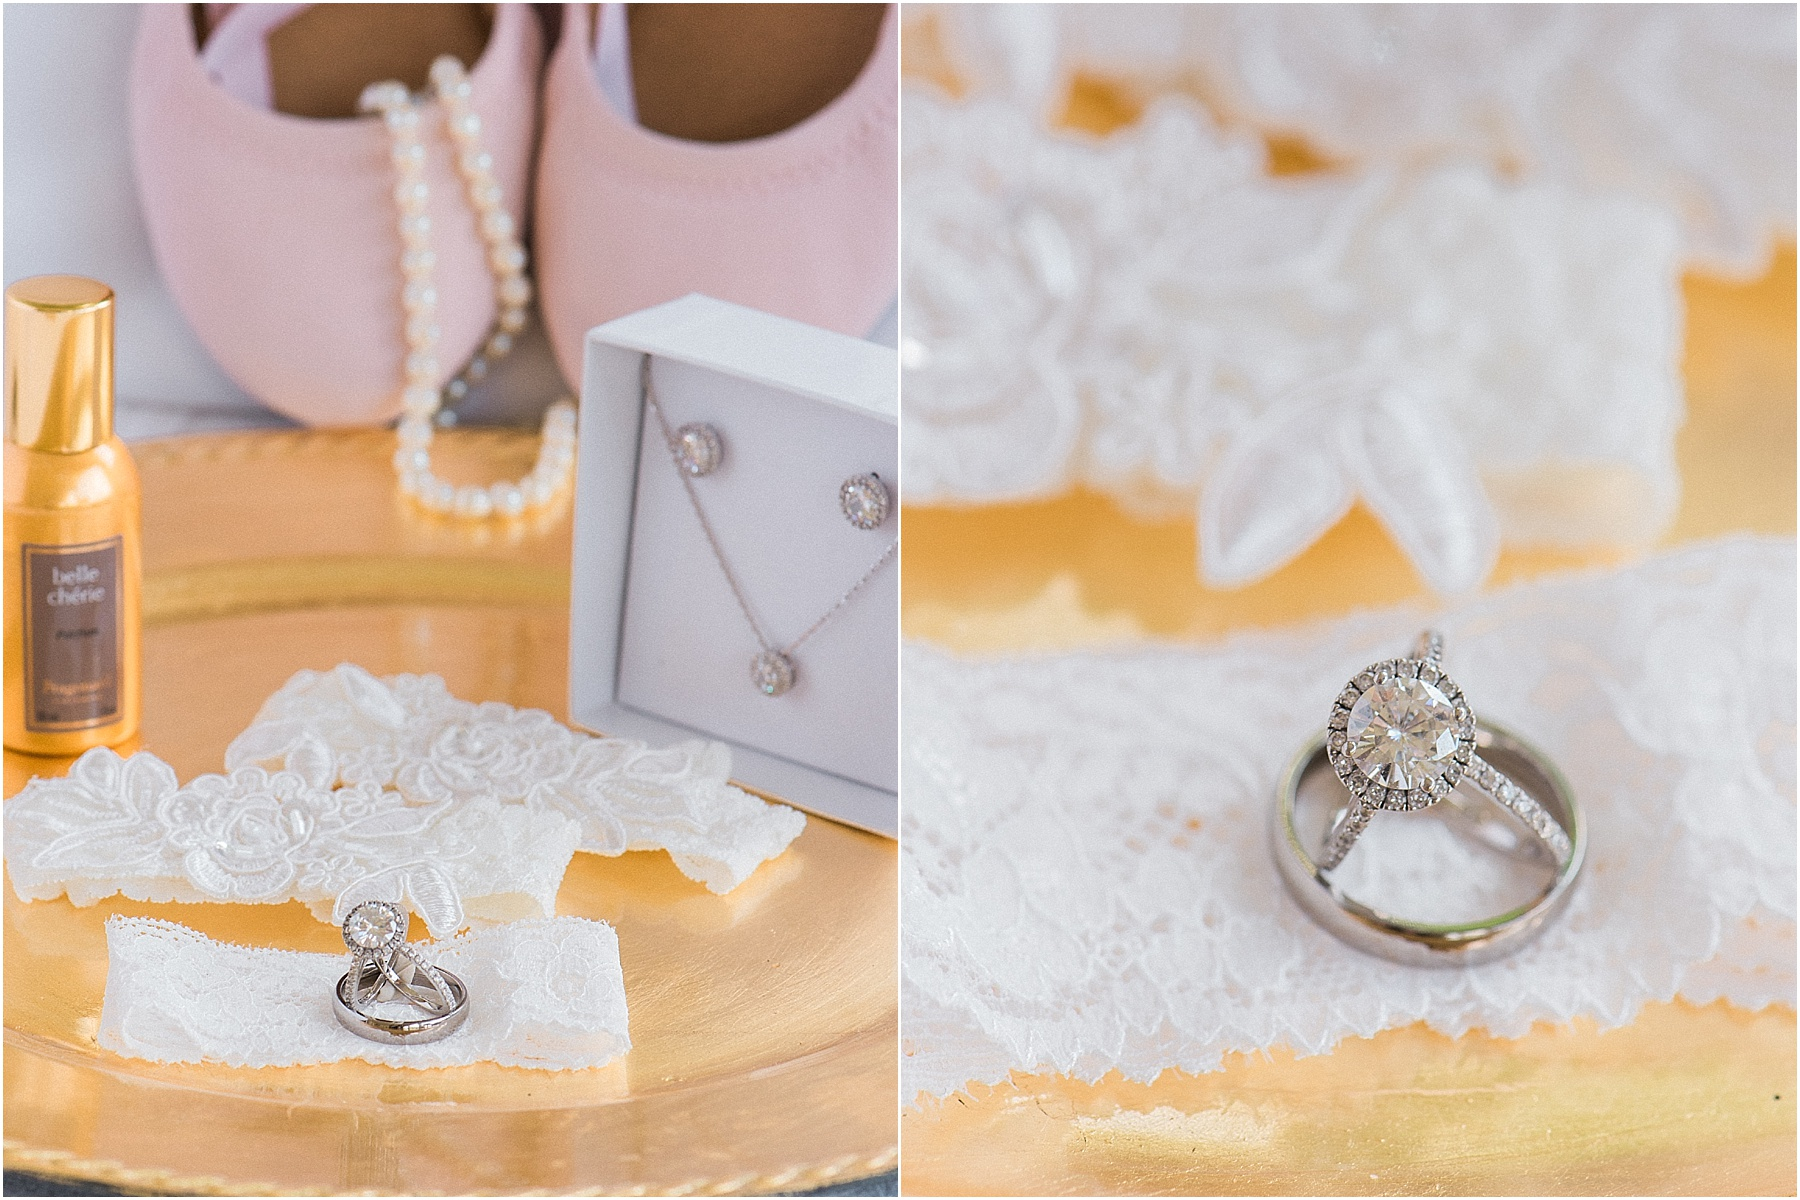 Wedding Rings wedding jewelry and shoes styled detail photography wedding day detail photography